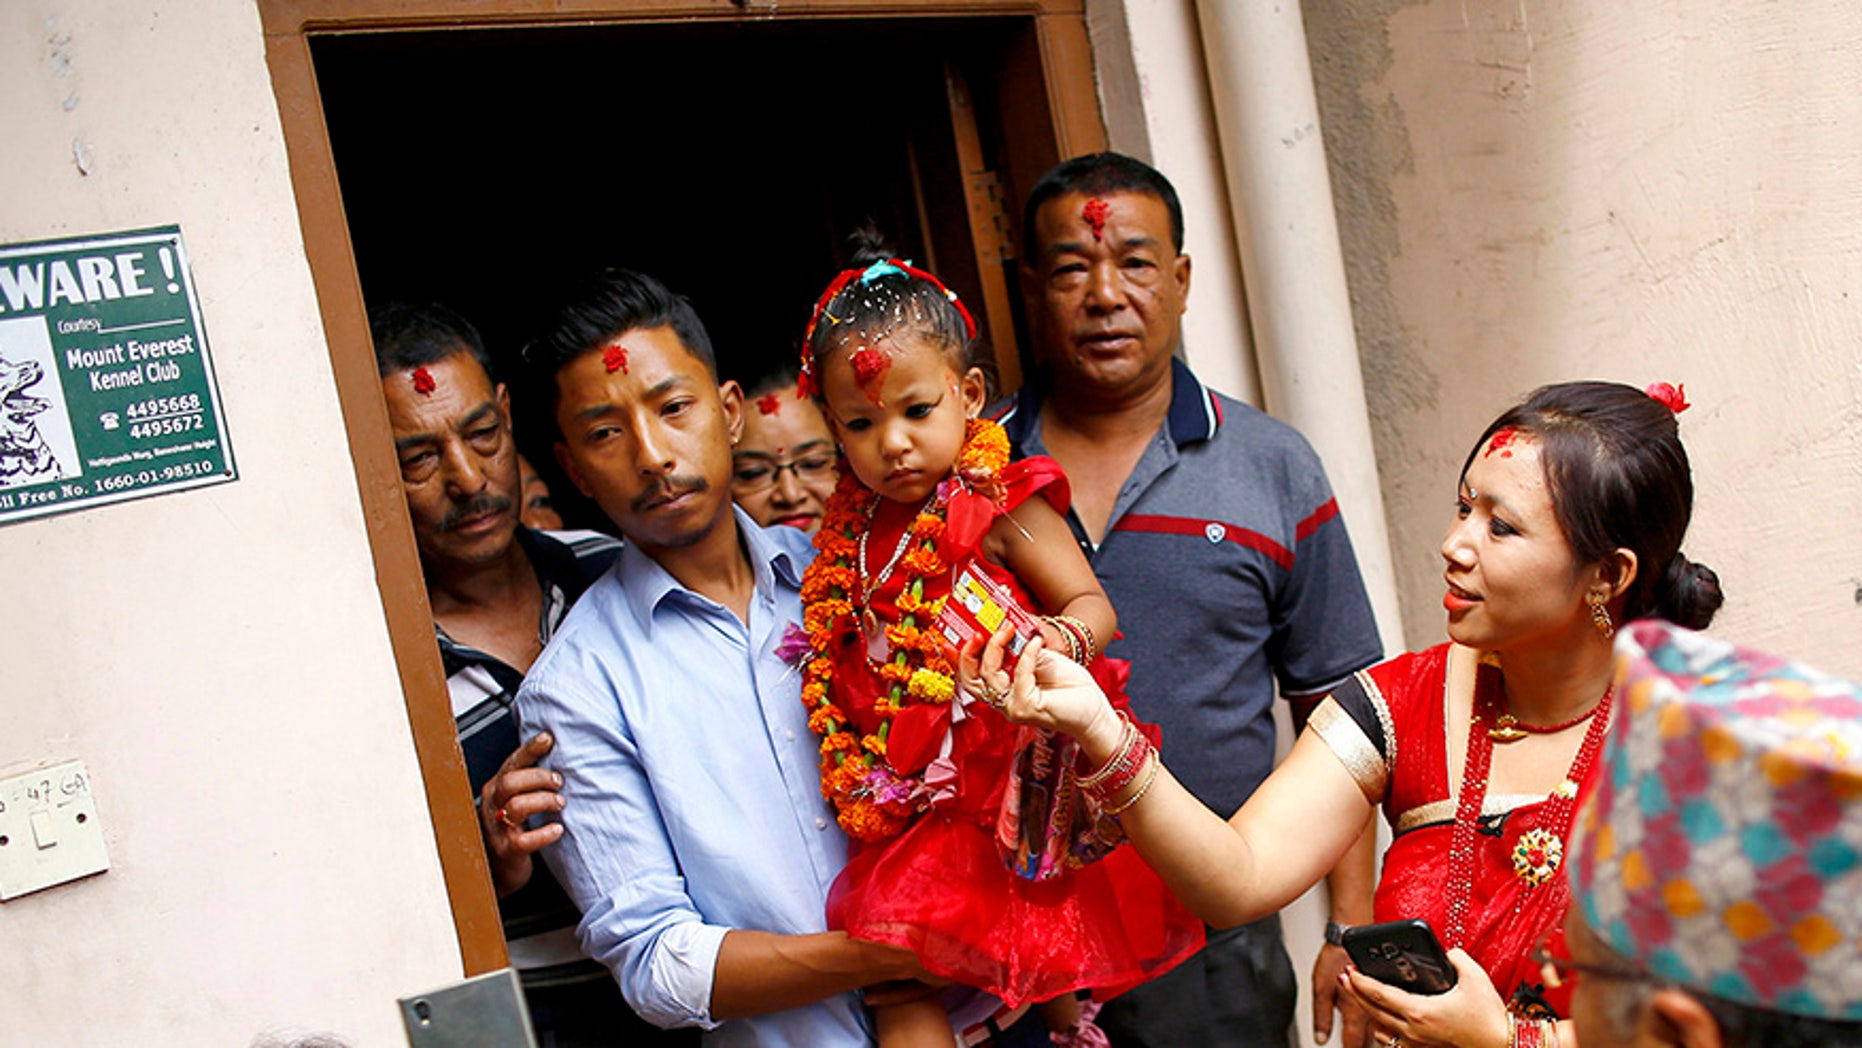 Nepal's new living goddess Trishna Shakya, 3, is carried by her father as they leave home for a temple palace in Kathmandu, Nepal.